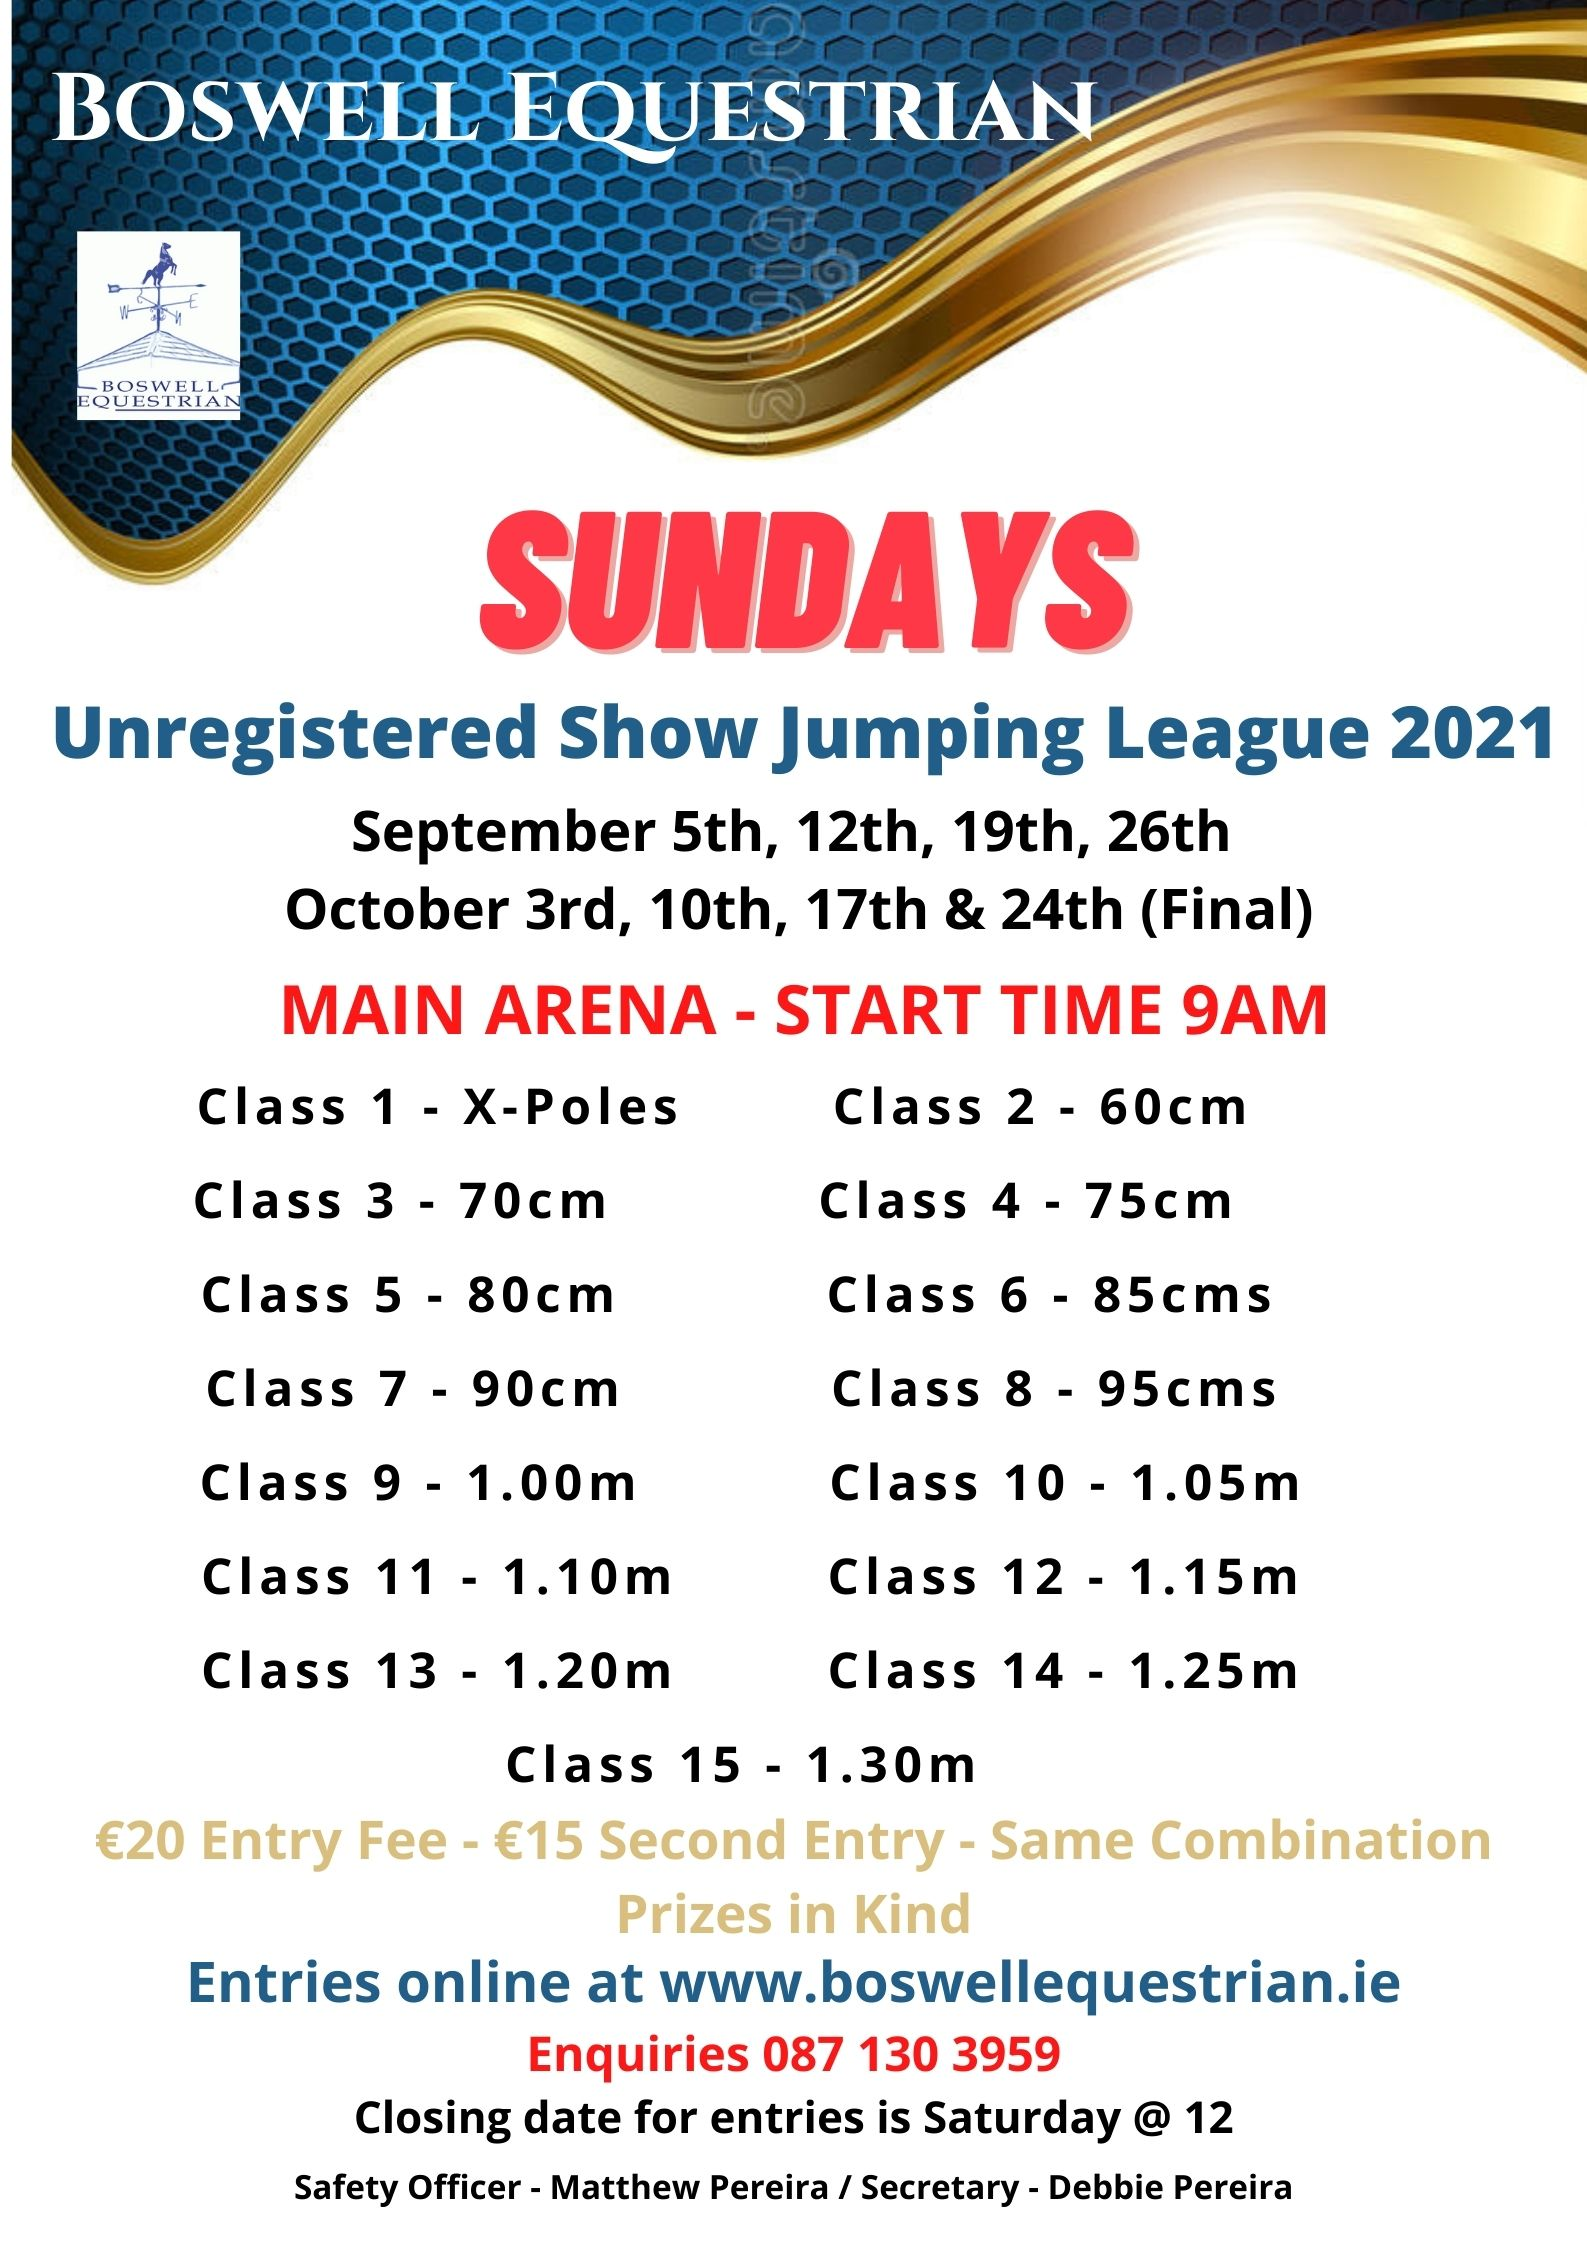 Unregistered Show Jumping